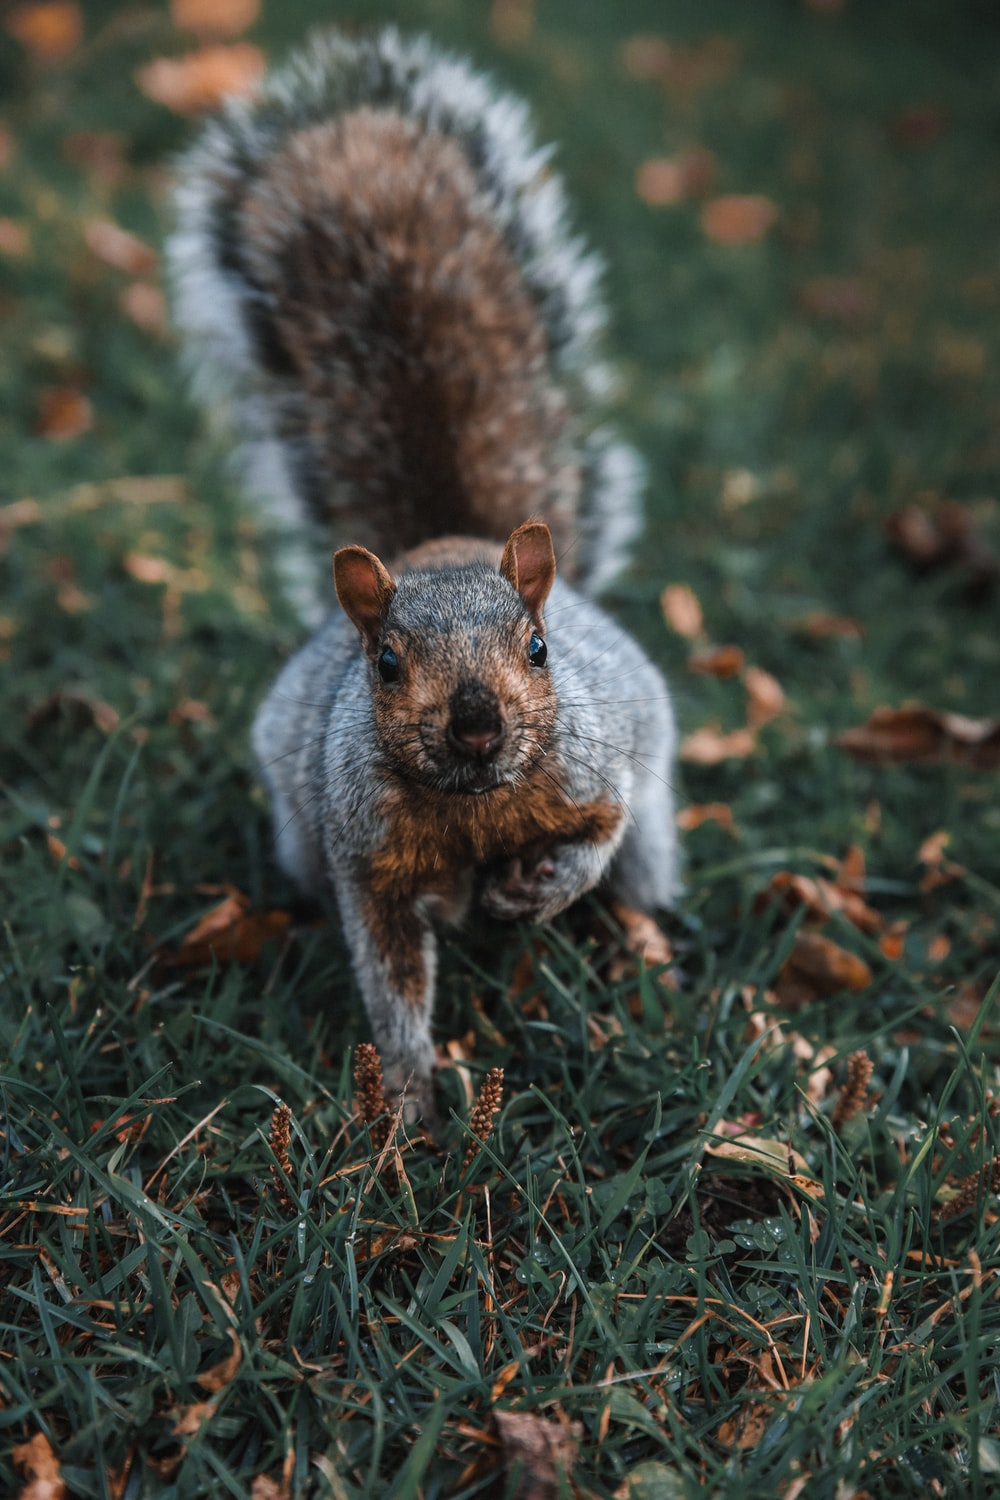 brown squirrel crawling on grass